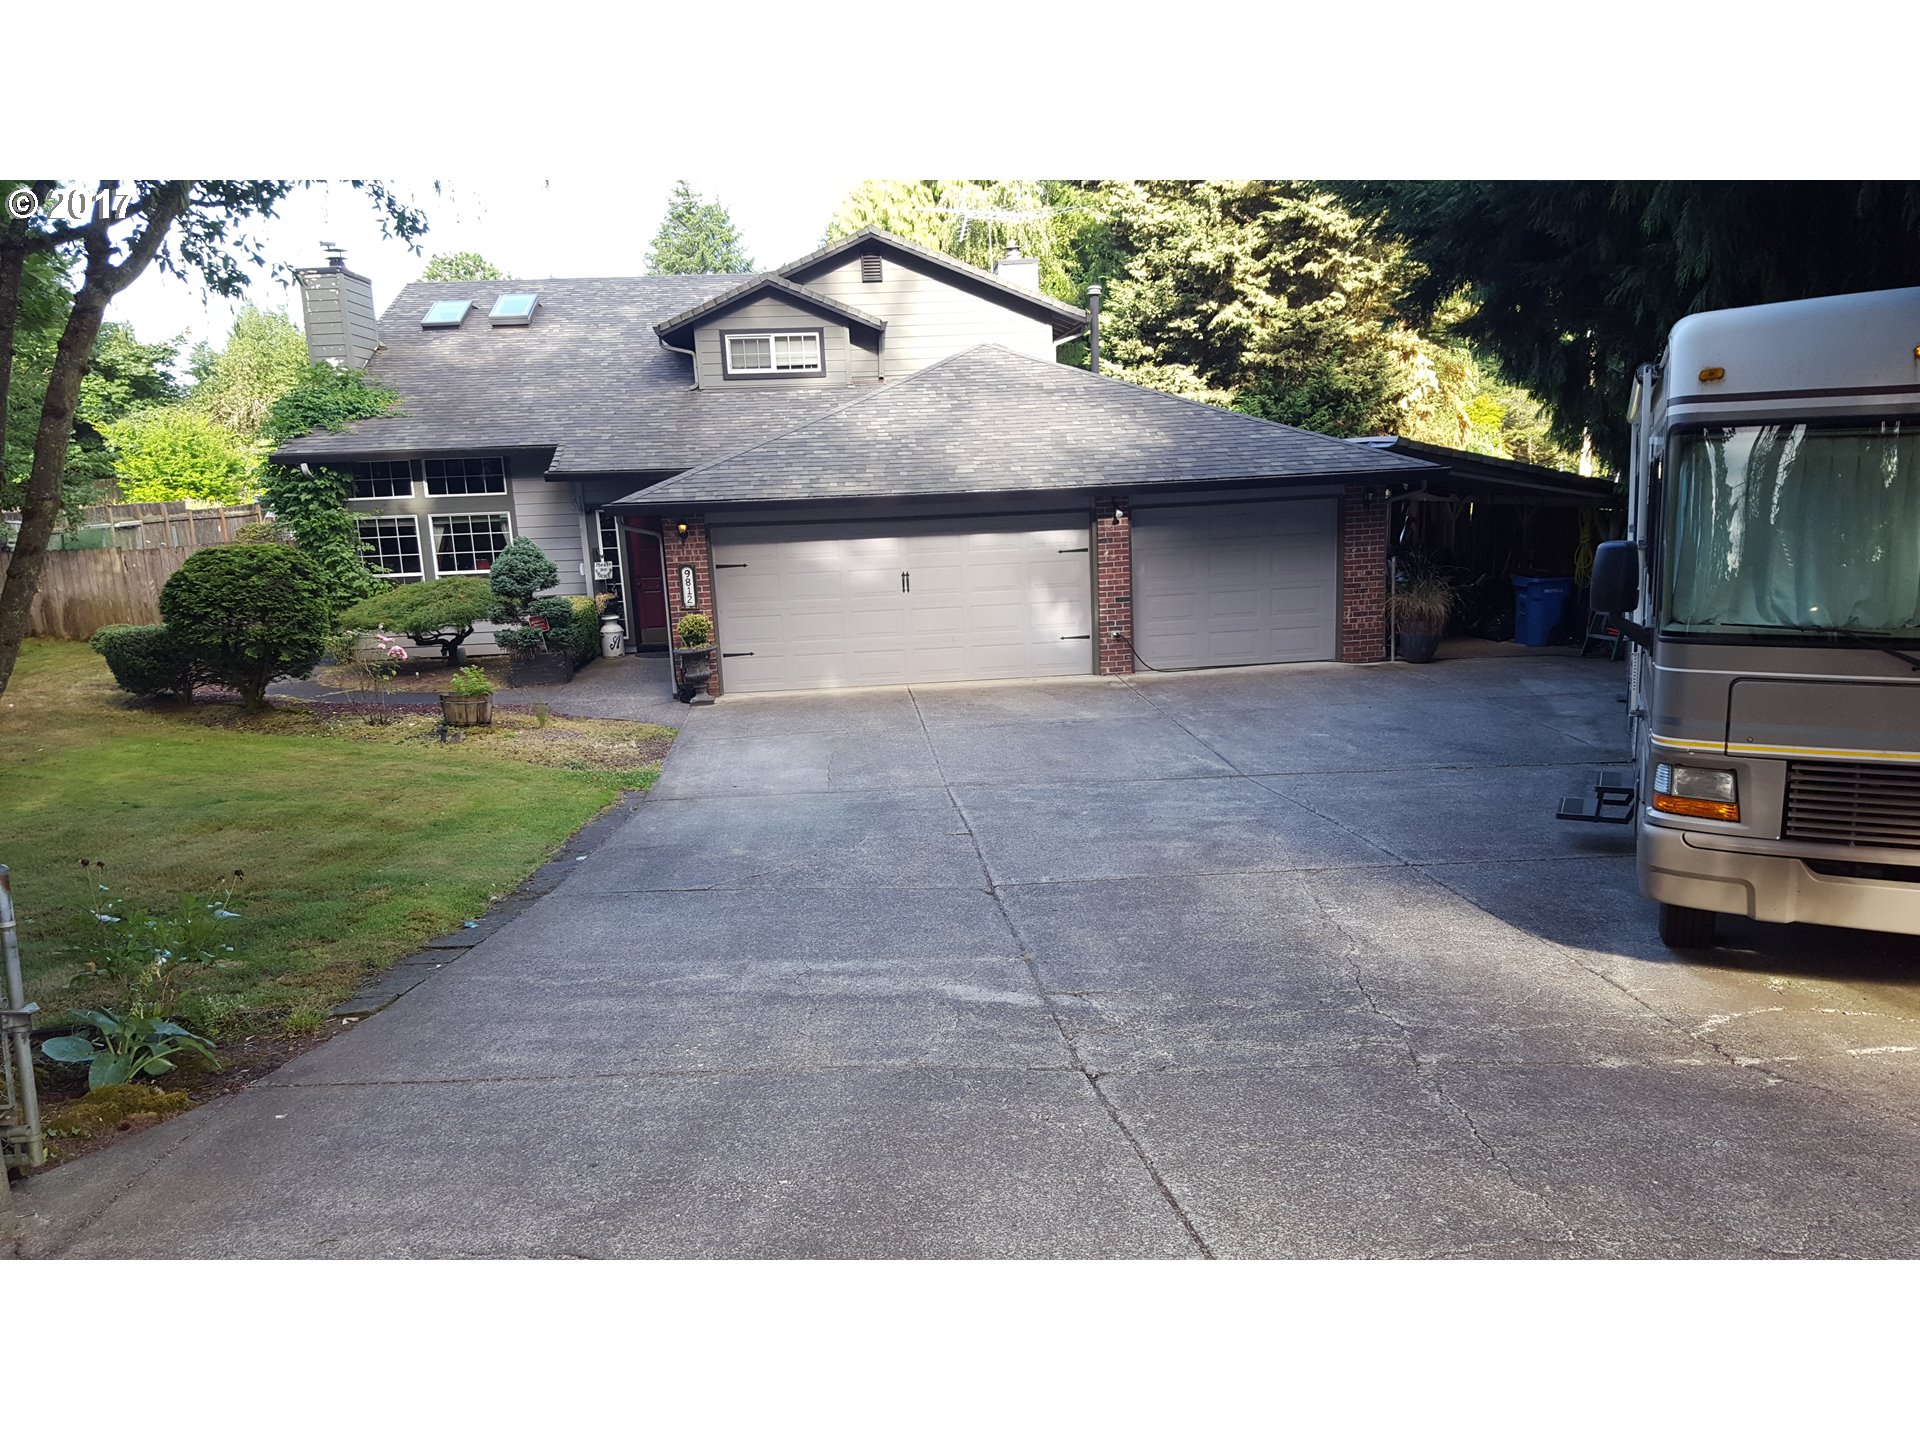 9812 NW 29TH AVE, Vancouver, WA 98665